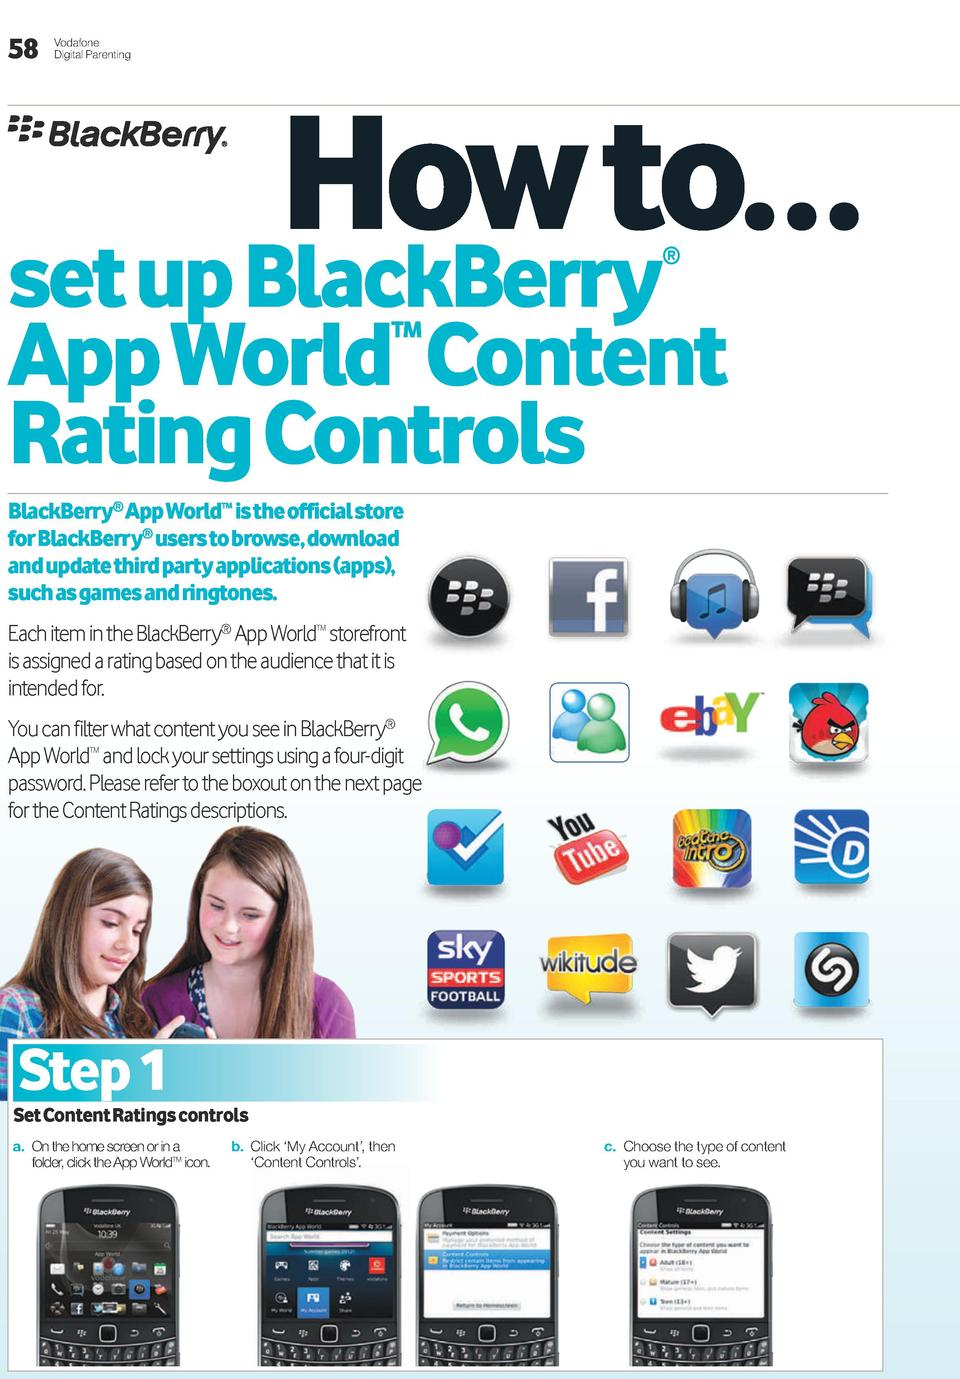 58  Vodafone Digital Parenting  how to    set up BlackBerry     app World content Rating controls TM  BlackBerry   app Wor...